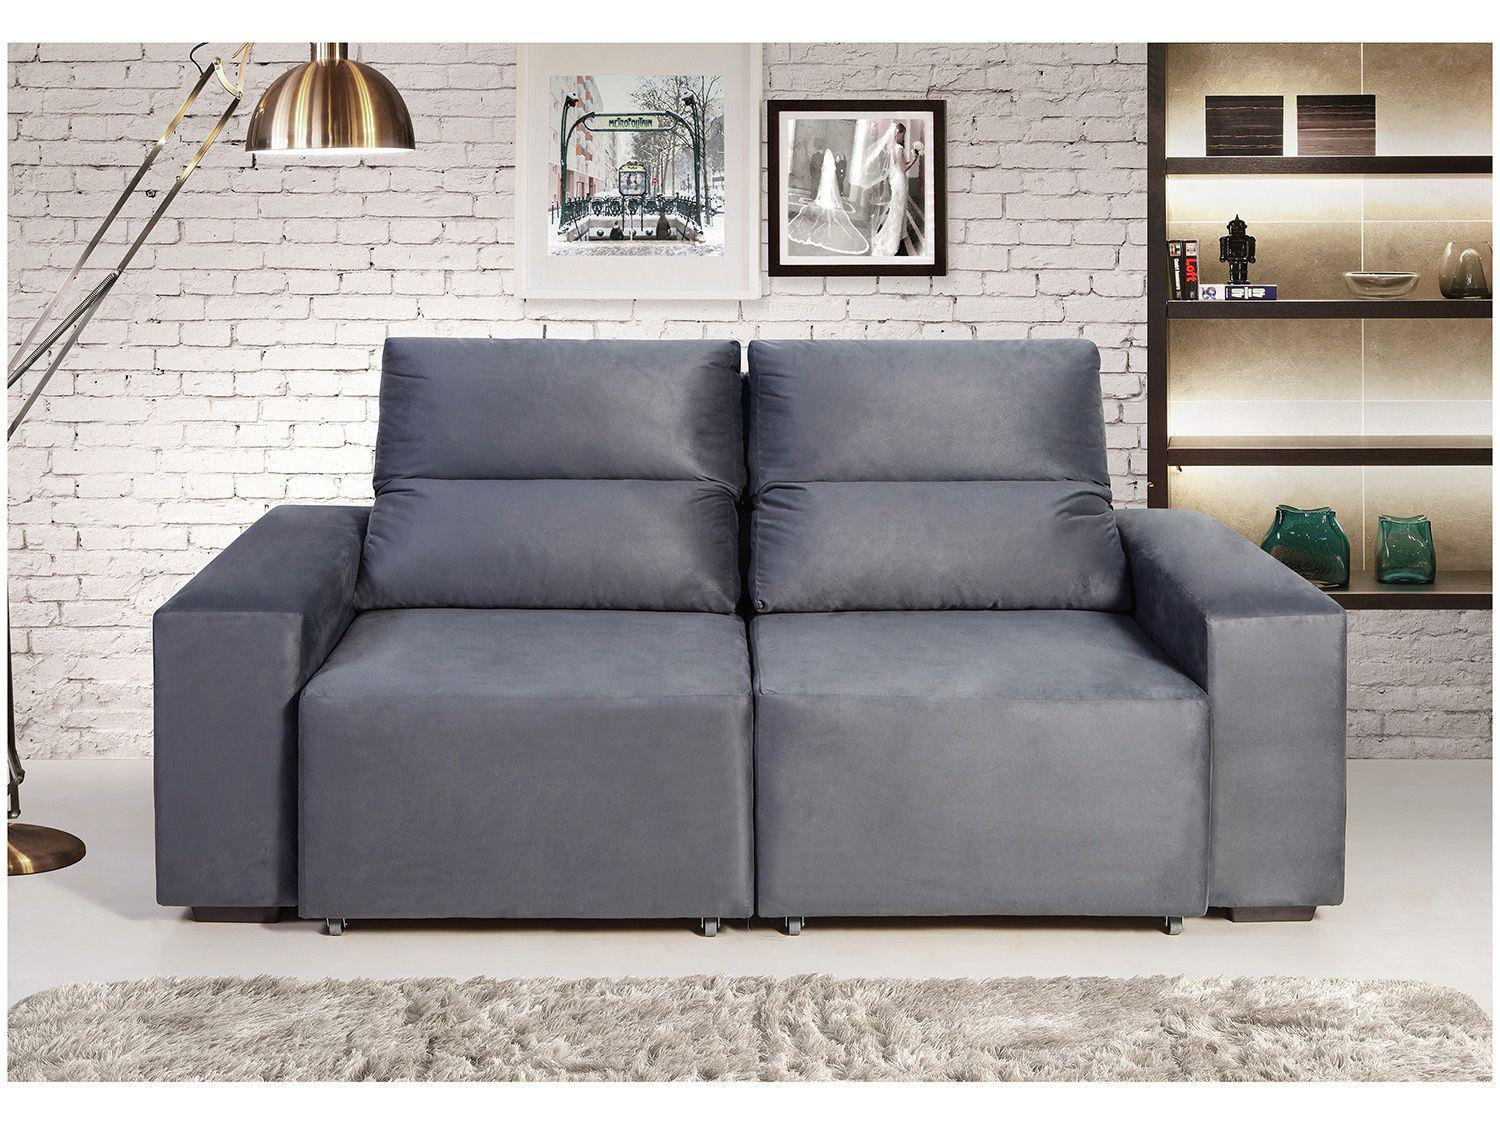 Sof retr til e reclin vel 3 lugares camboriu catarina for Sofa 03 lugares retratil e reclinavel